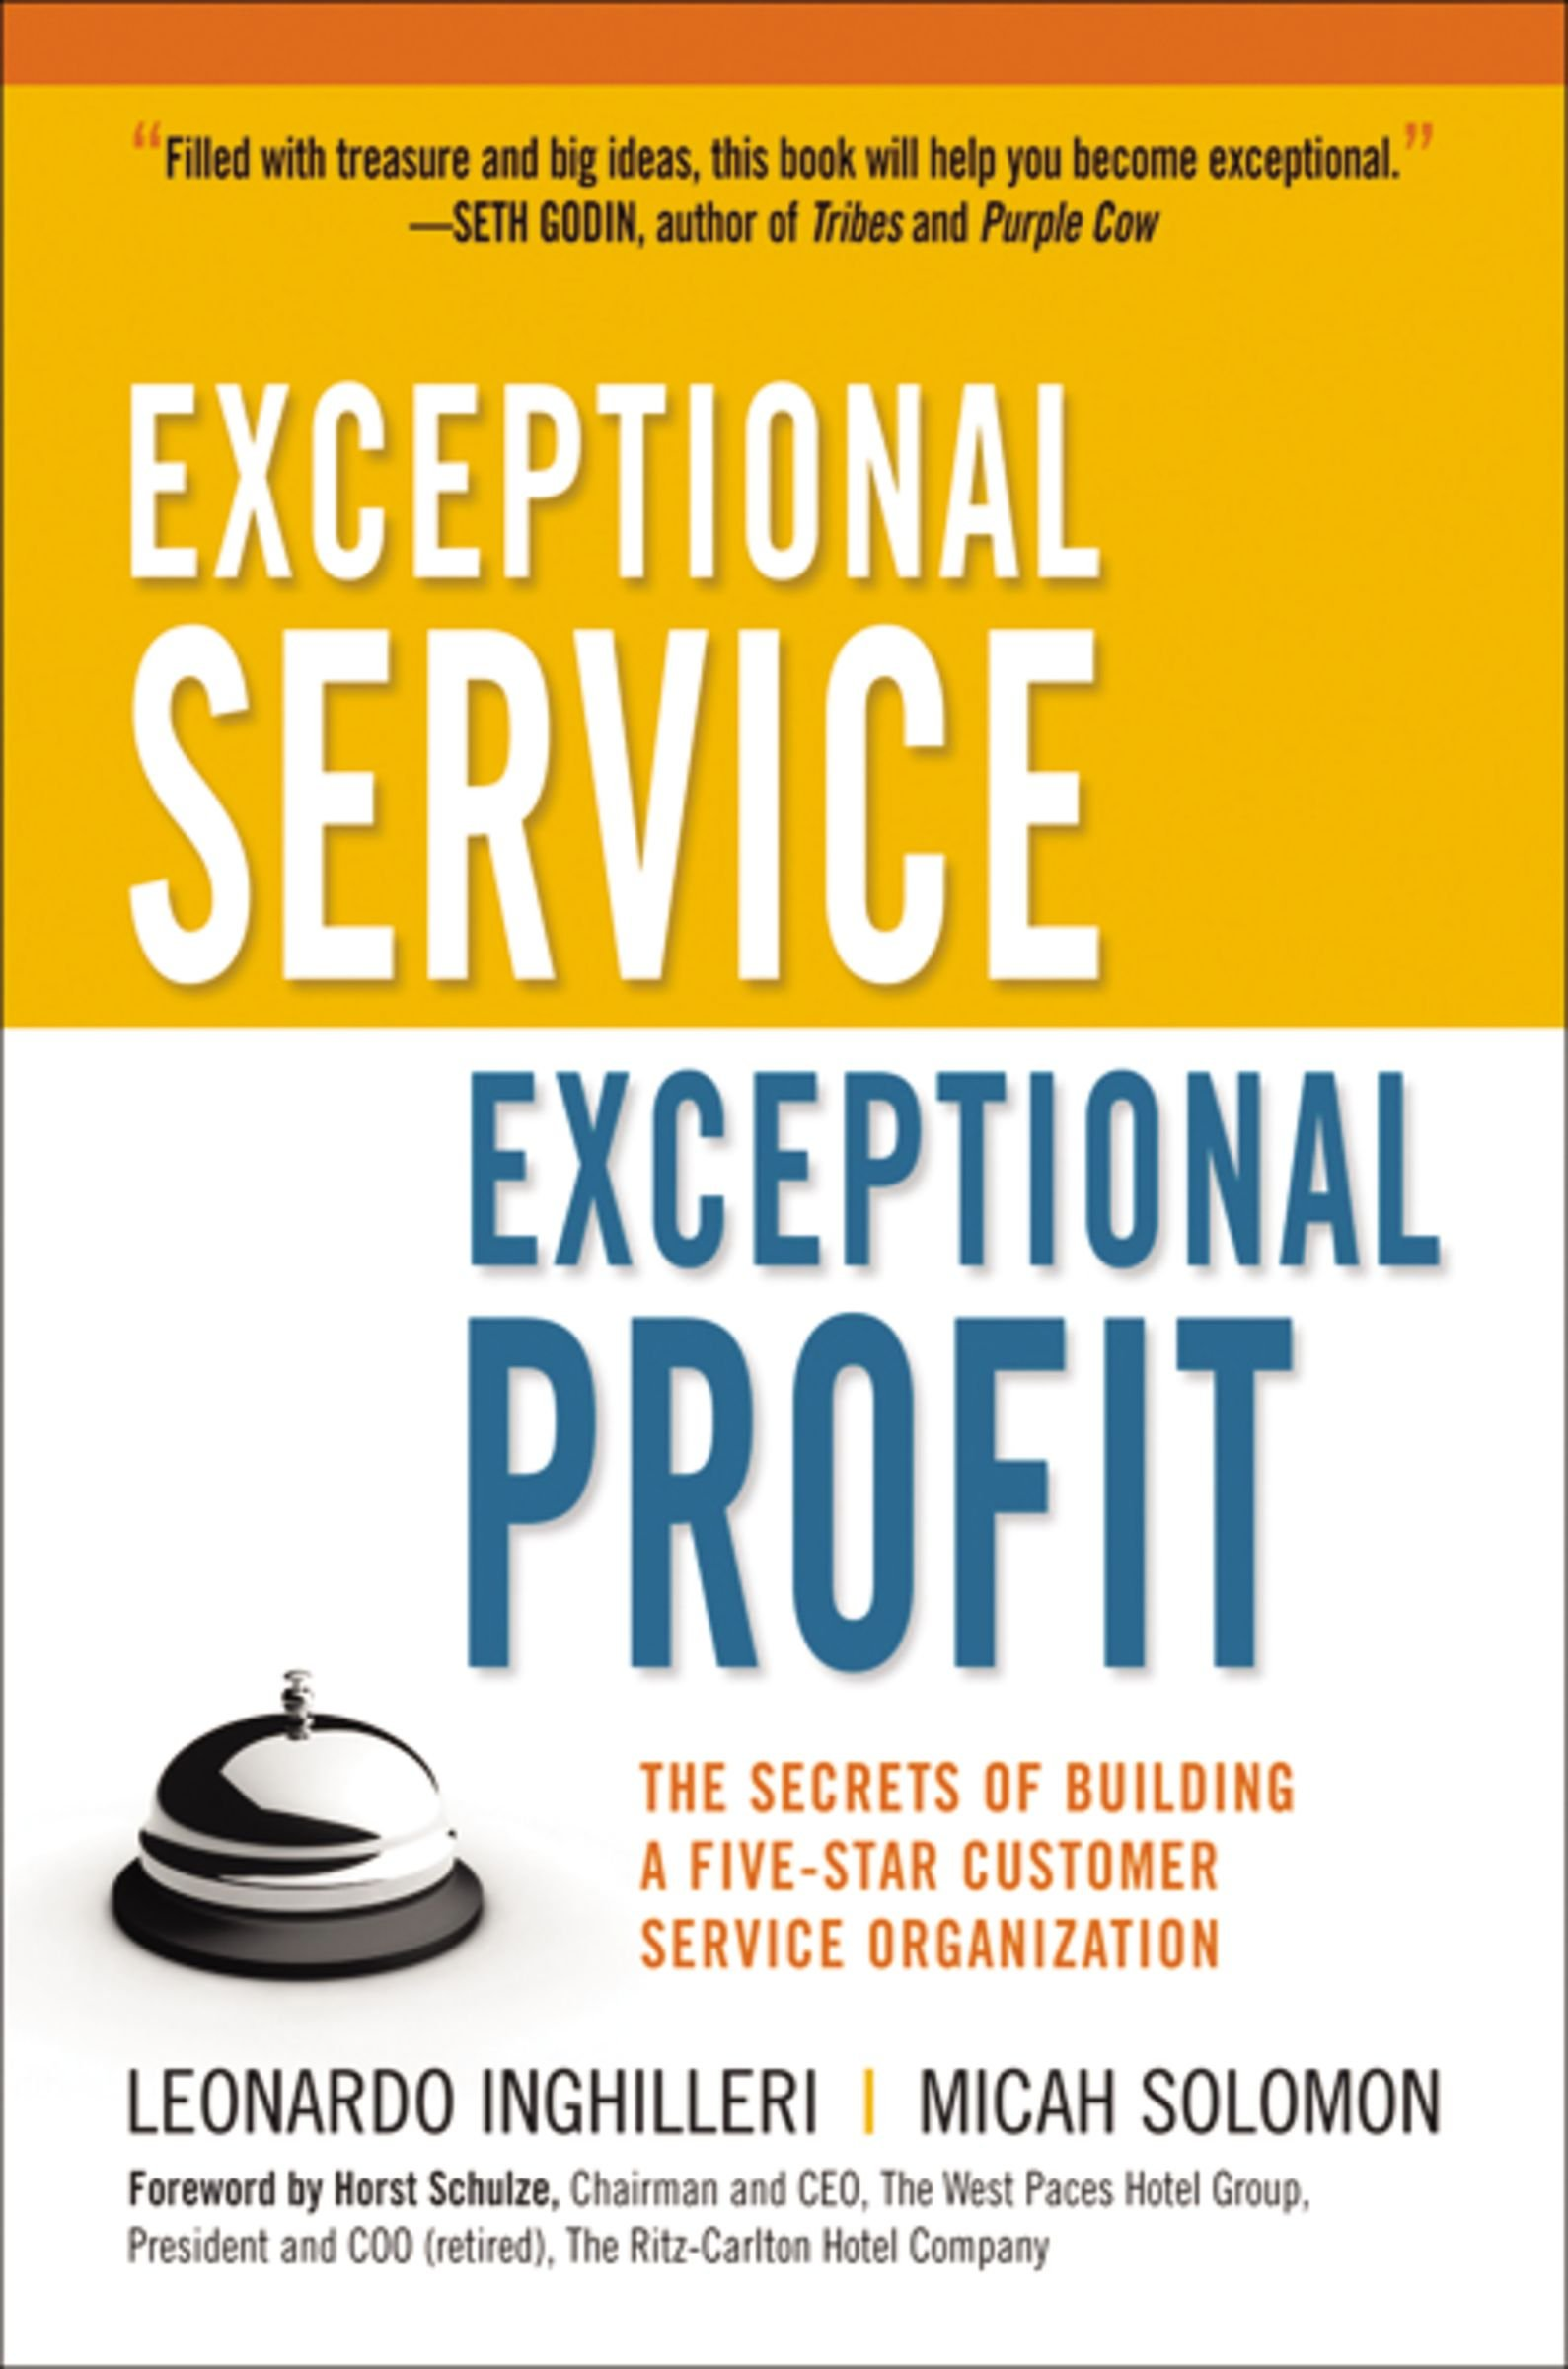 Exceptional Service, Exceptional Profit: The Secrets of Building a Five-Star Customer Service Organization: Amazon.es: Leonardo Inghilleri, Micah Solomon: ...